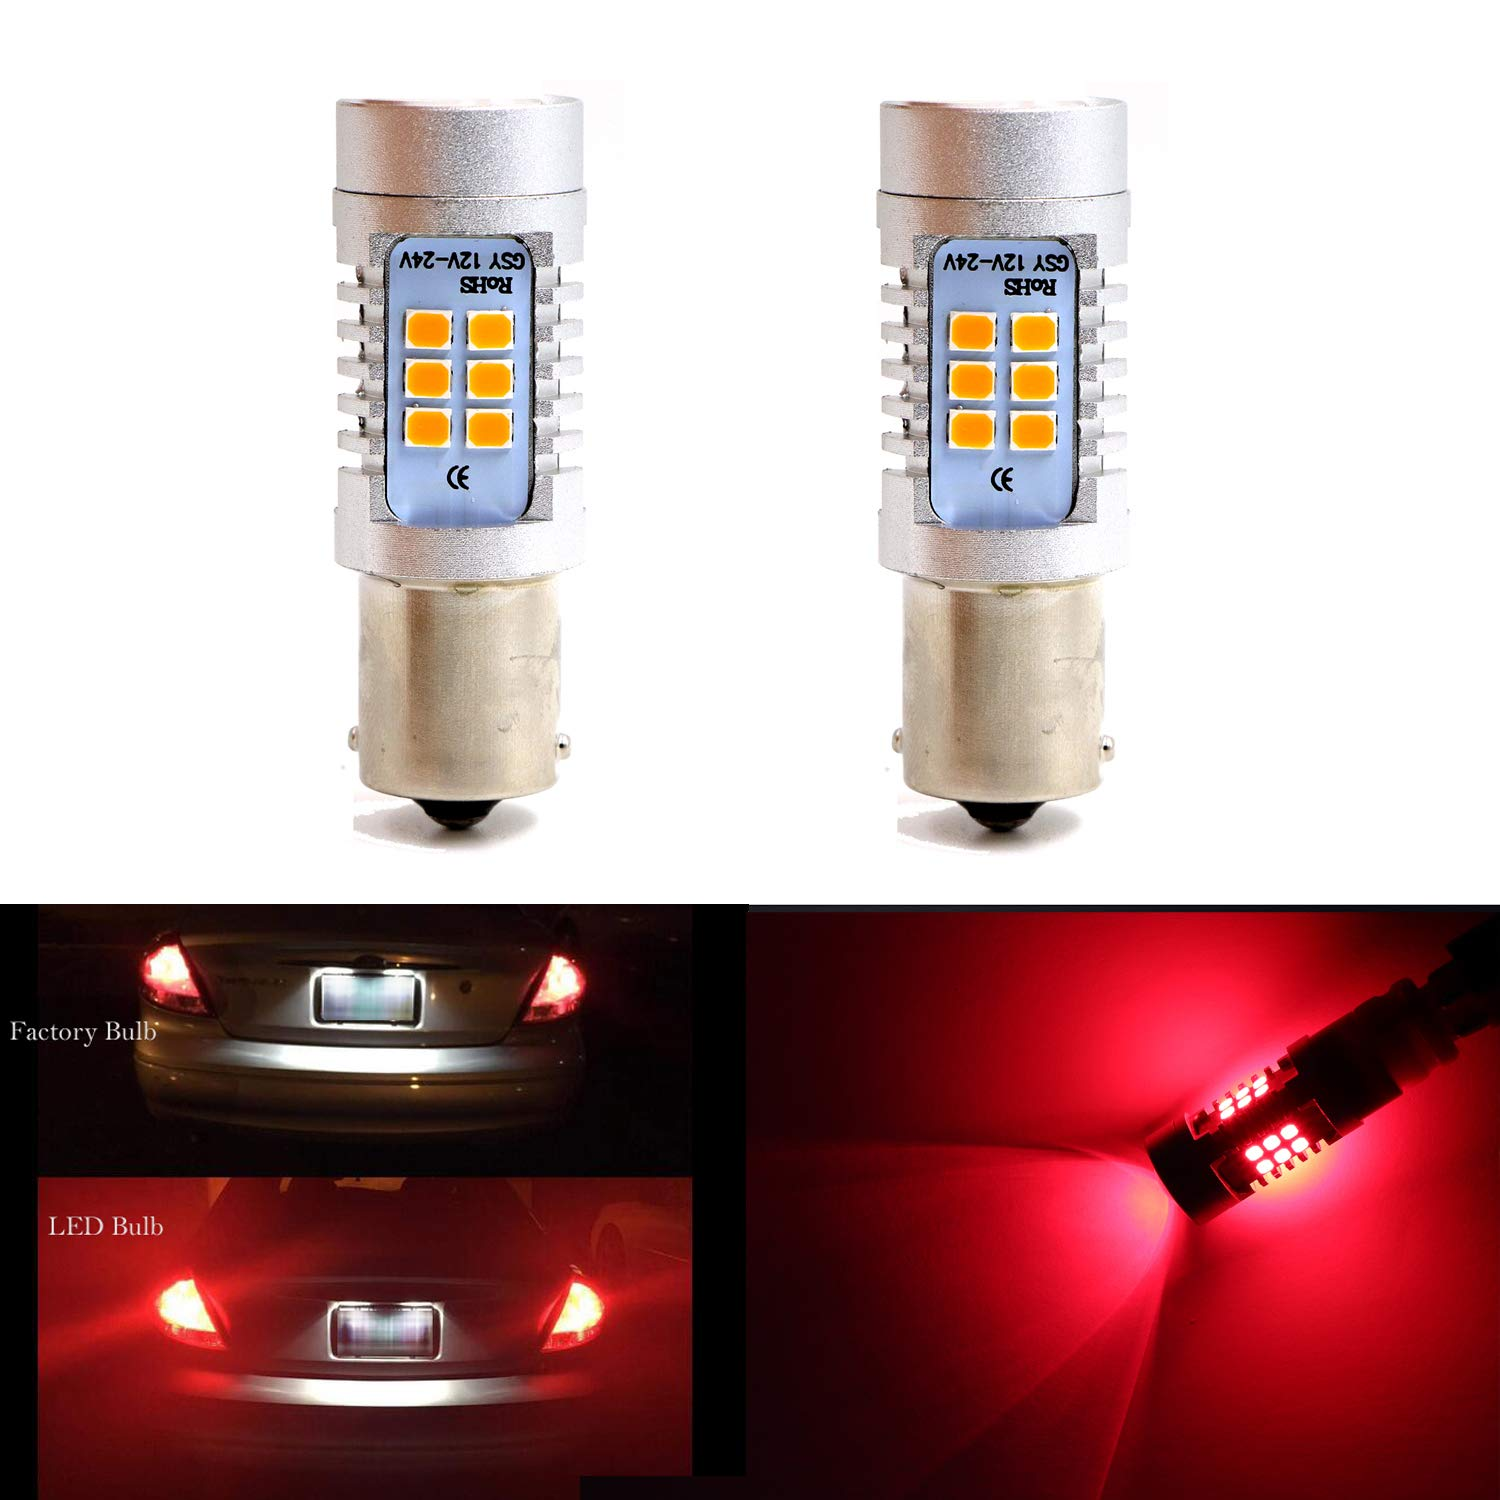 Amazon.com: 3056 3156 3057 3157 Extremely Bright LED Bulbs for Tail Lights, Brake Lights, Stop Lights, Turn Signal Blinker Lights,Red (Pack of 2): ...